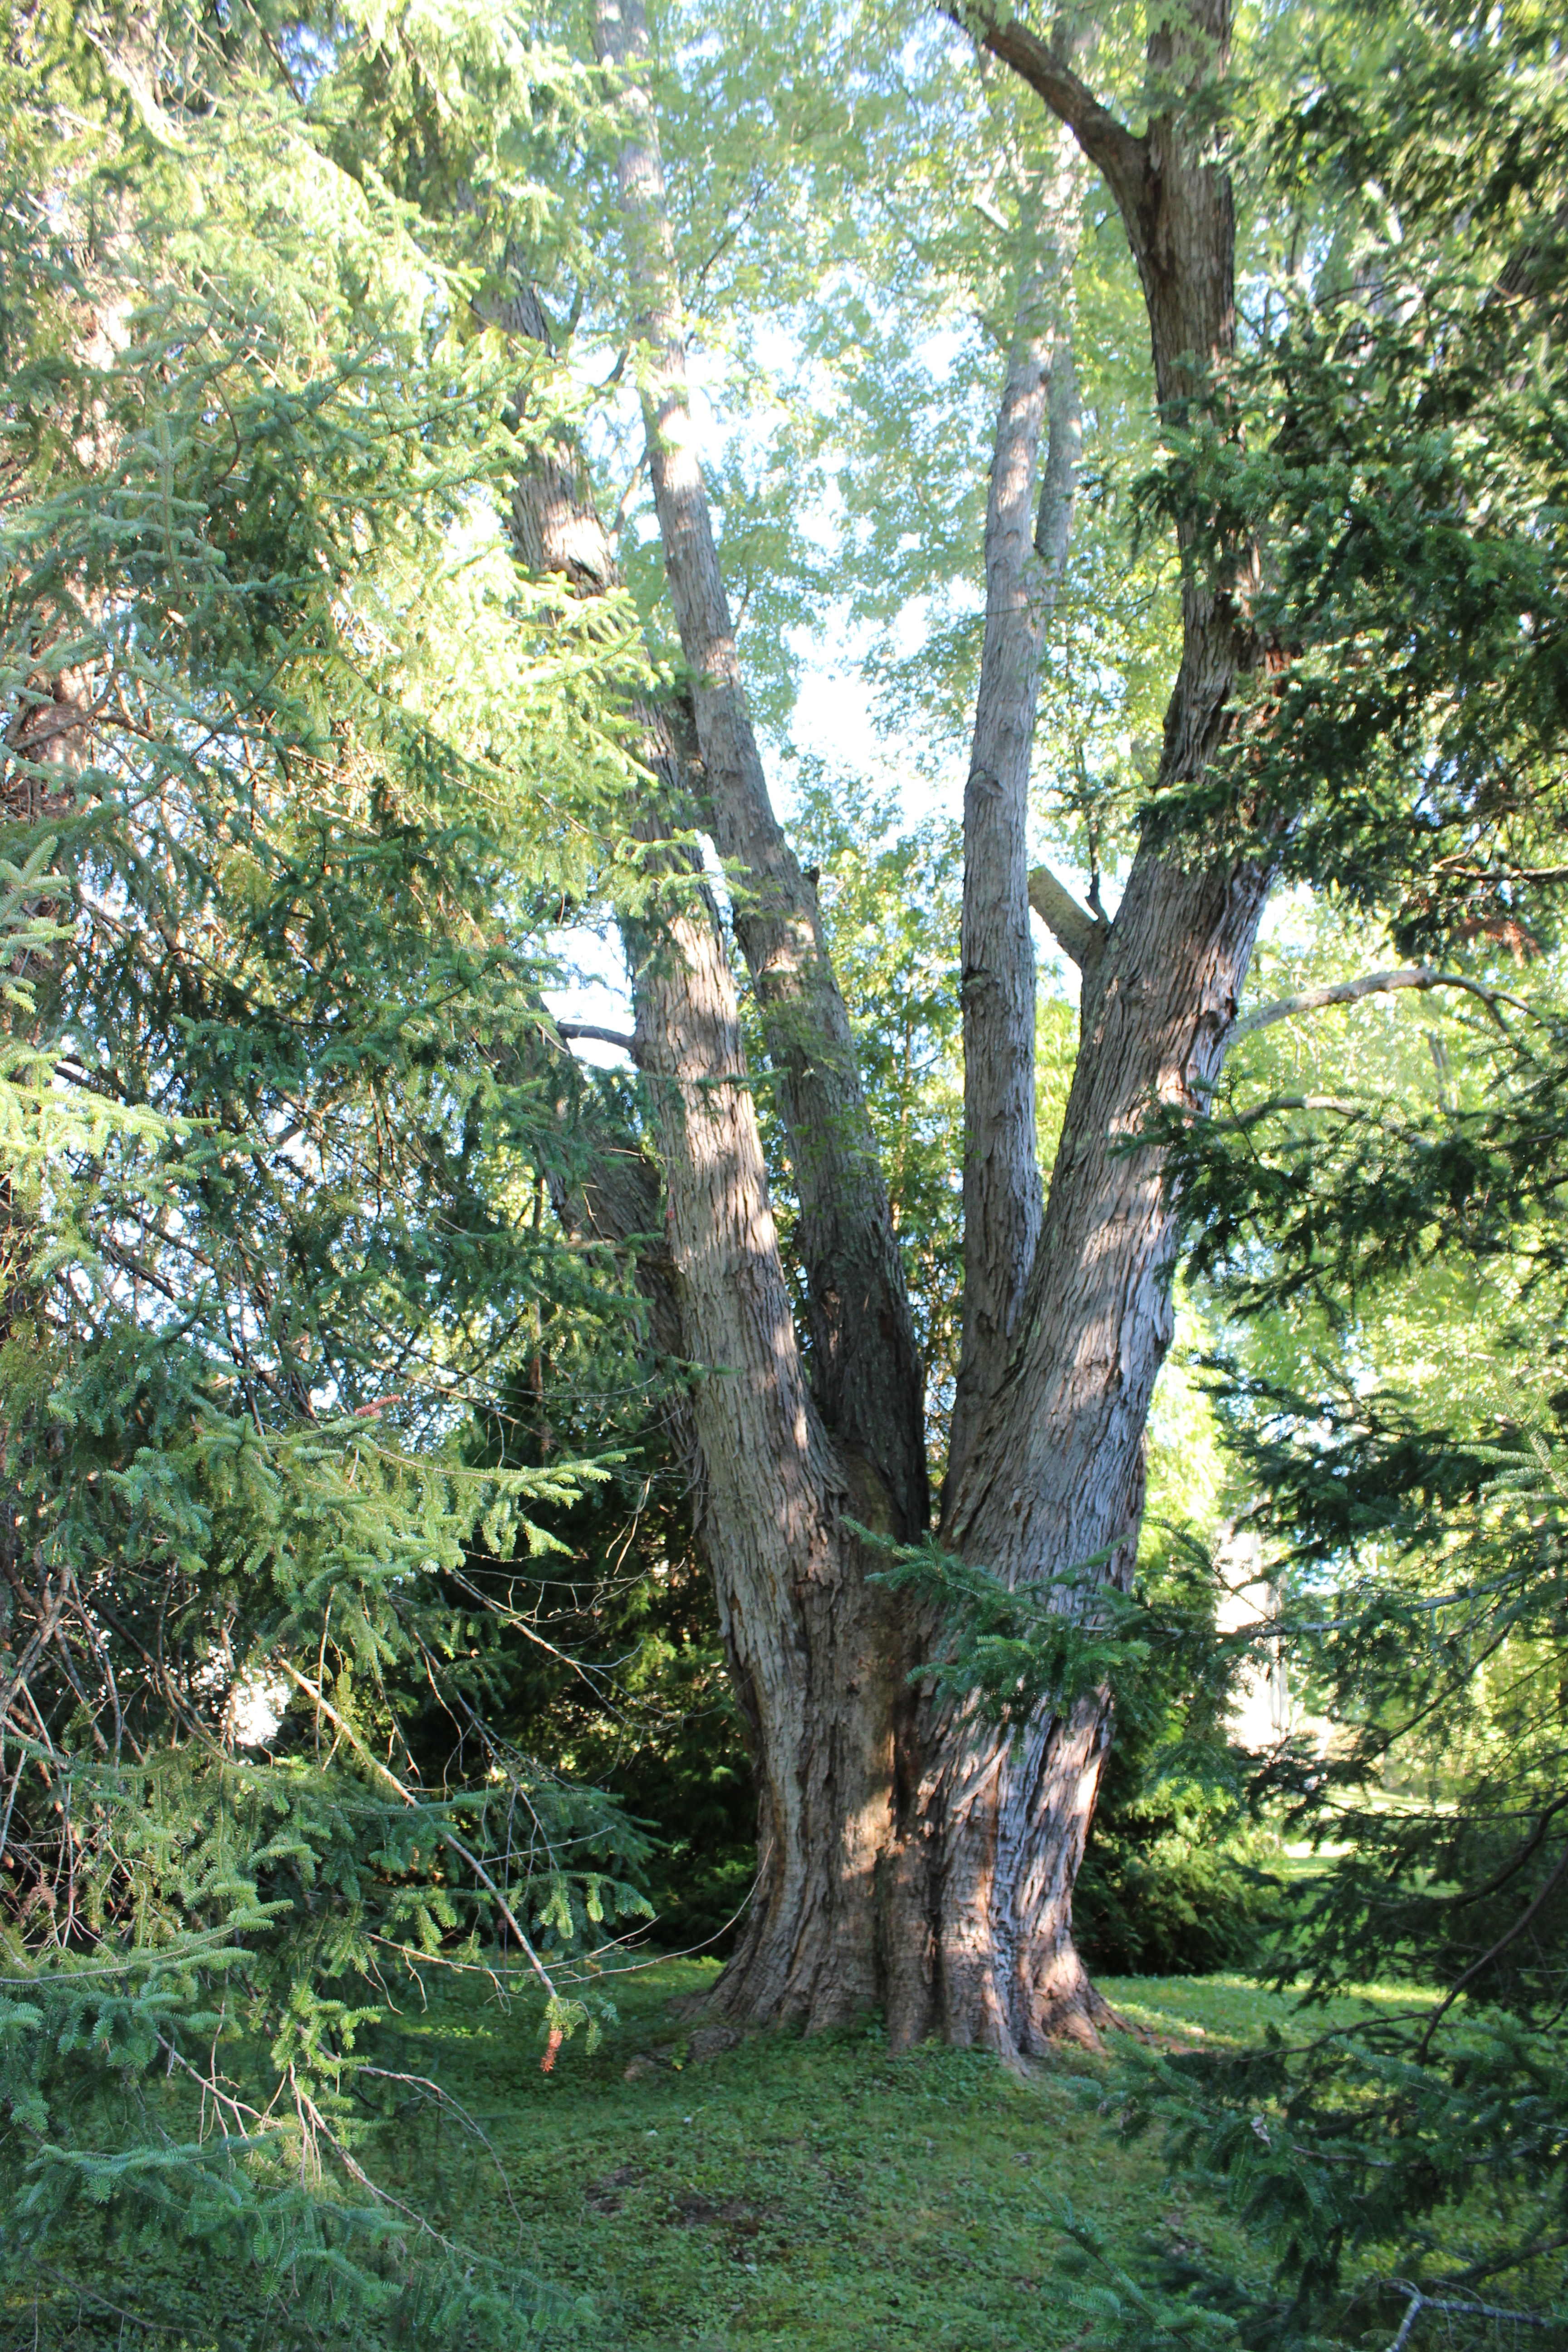 Trees Of Santa Cruz County Nyssa Sylvatica: Accurate Tree Removes Scale Topping Silver Maple In NH